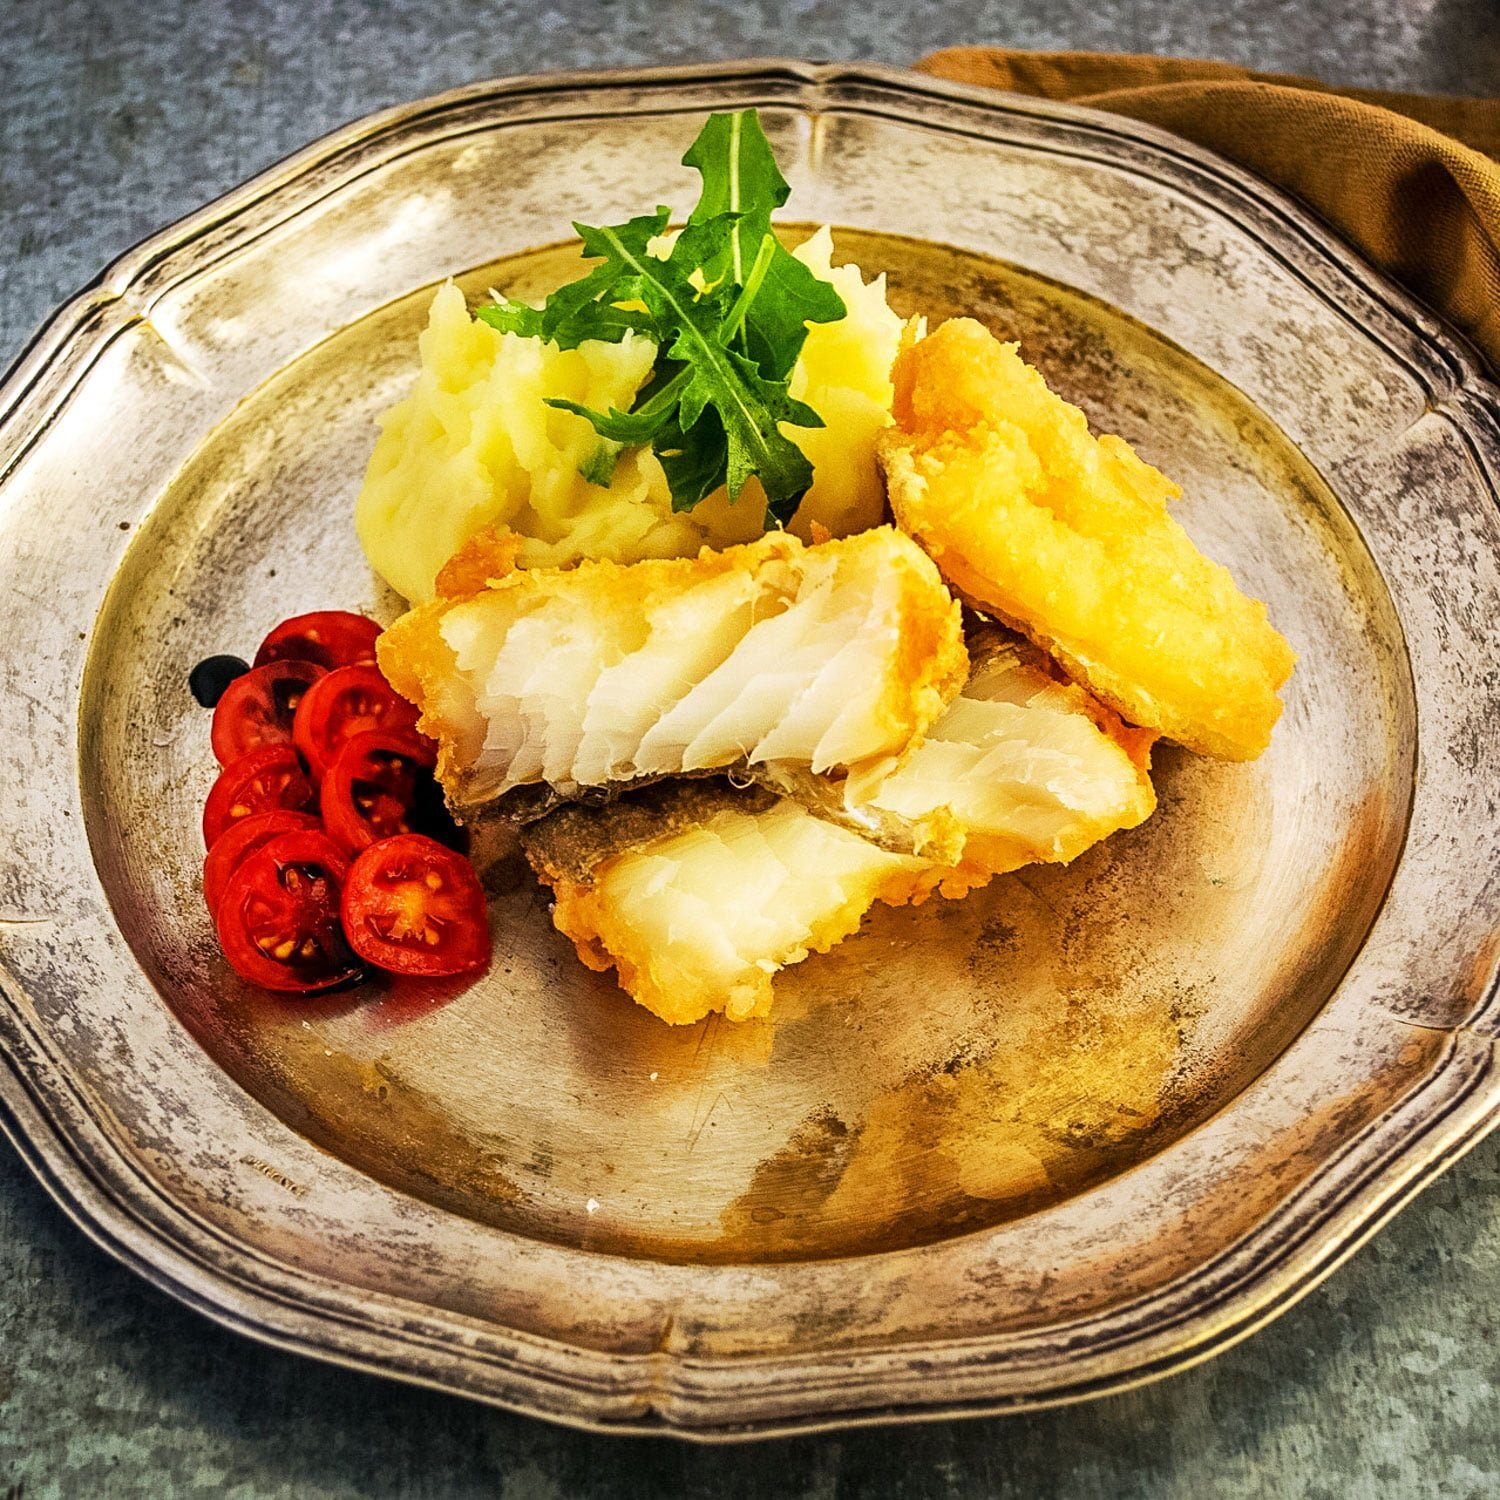 Pan Fried Fish Grandma Style11 1